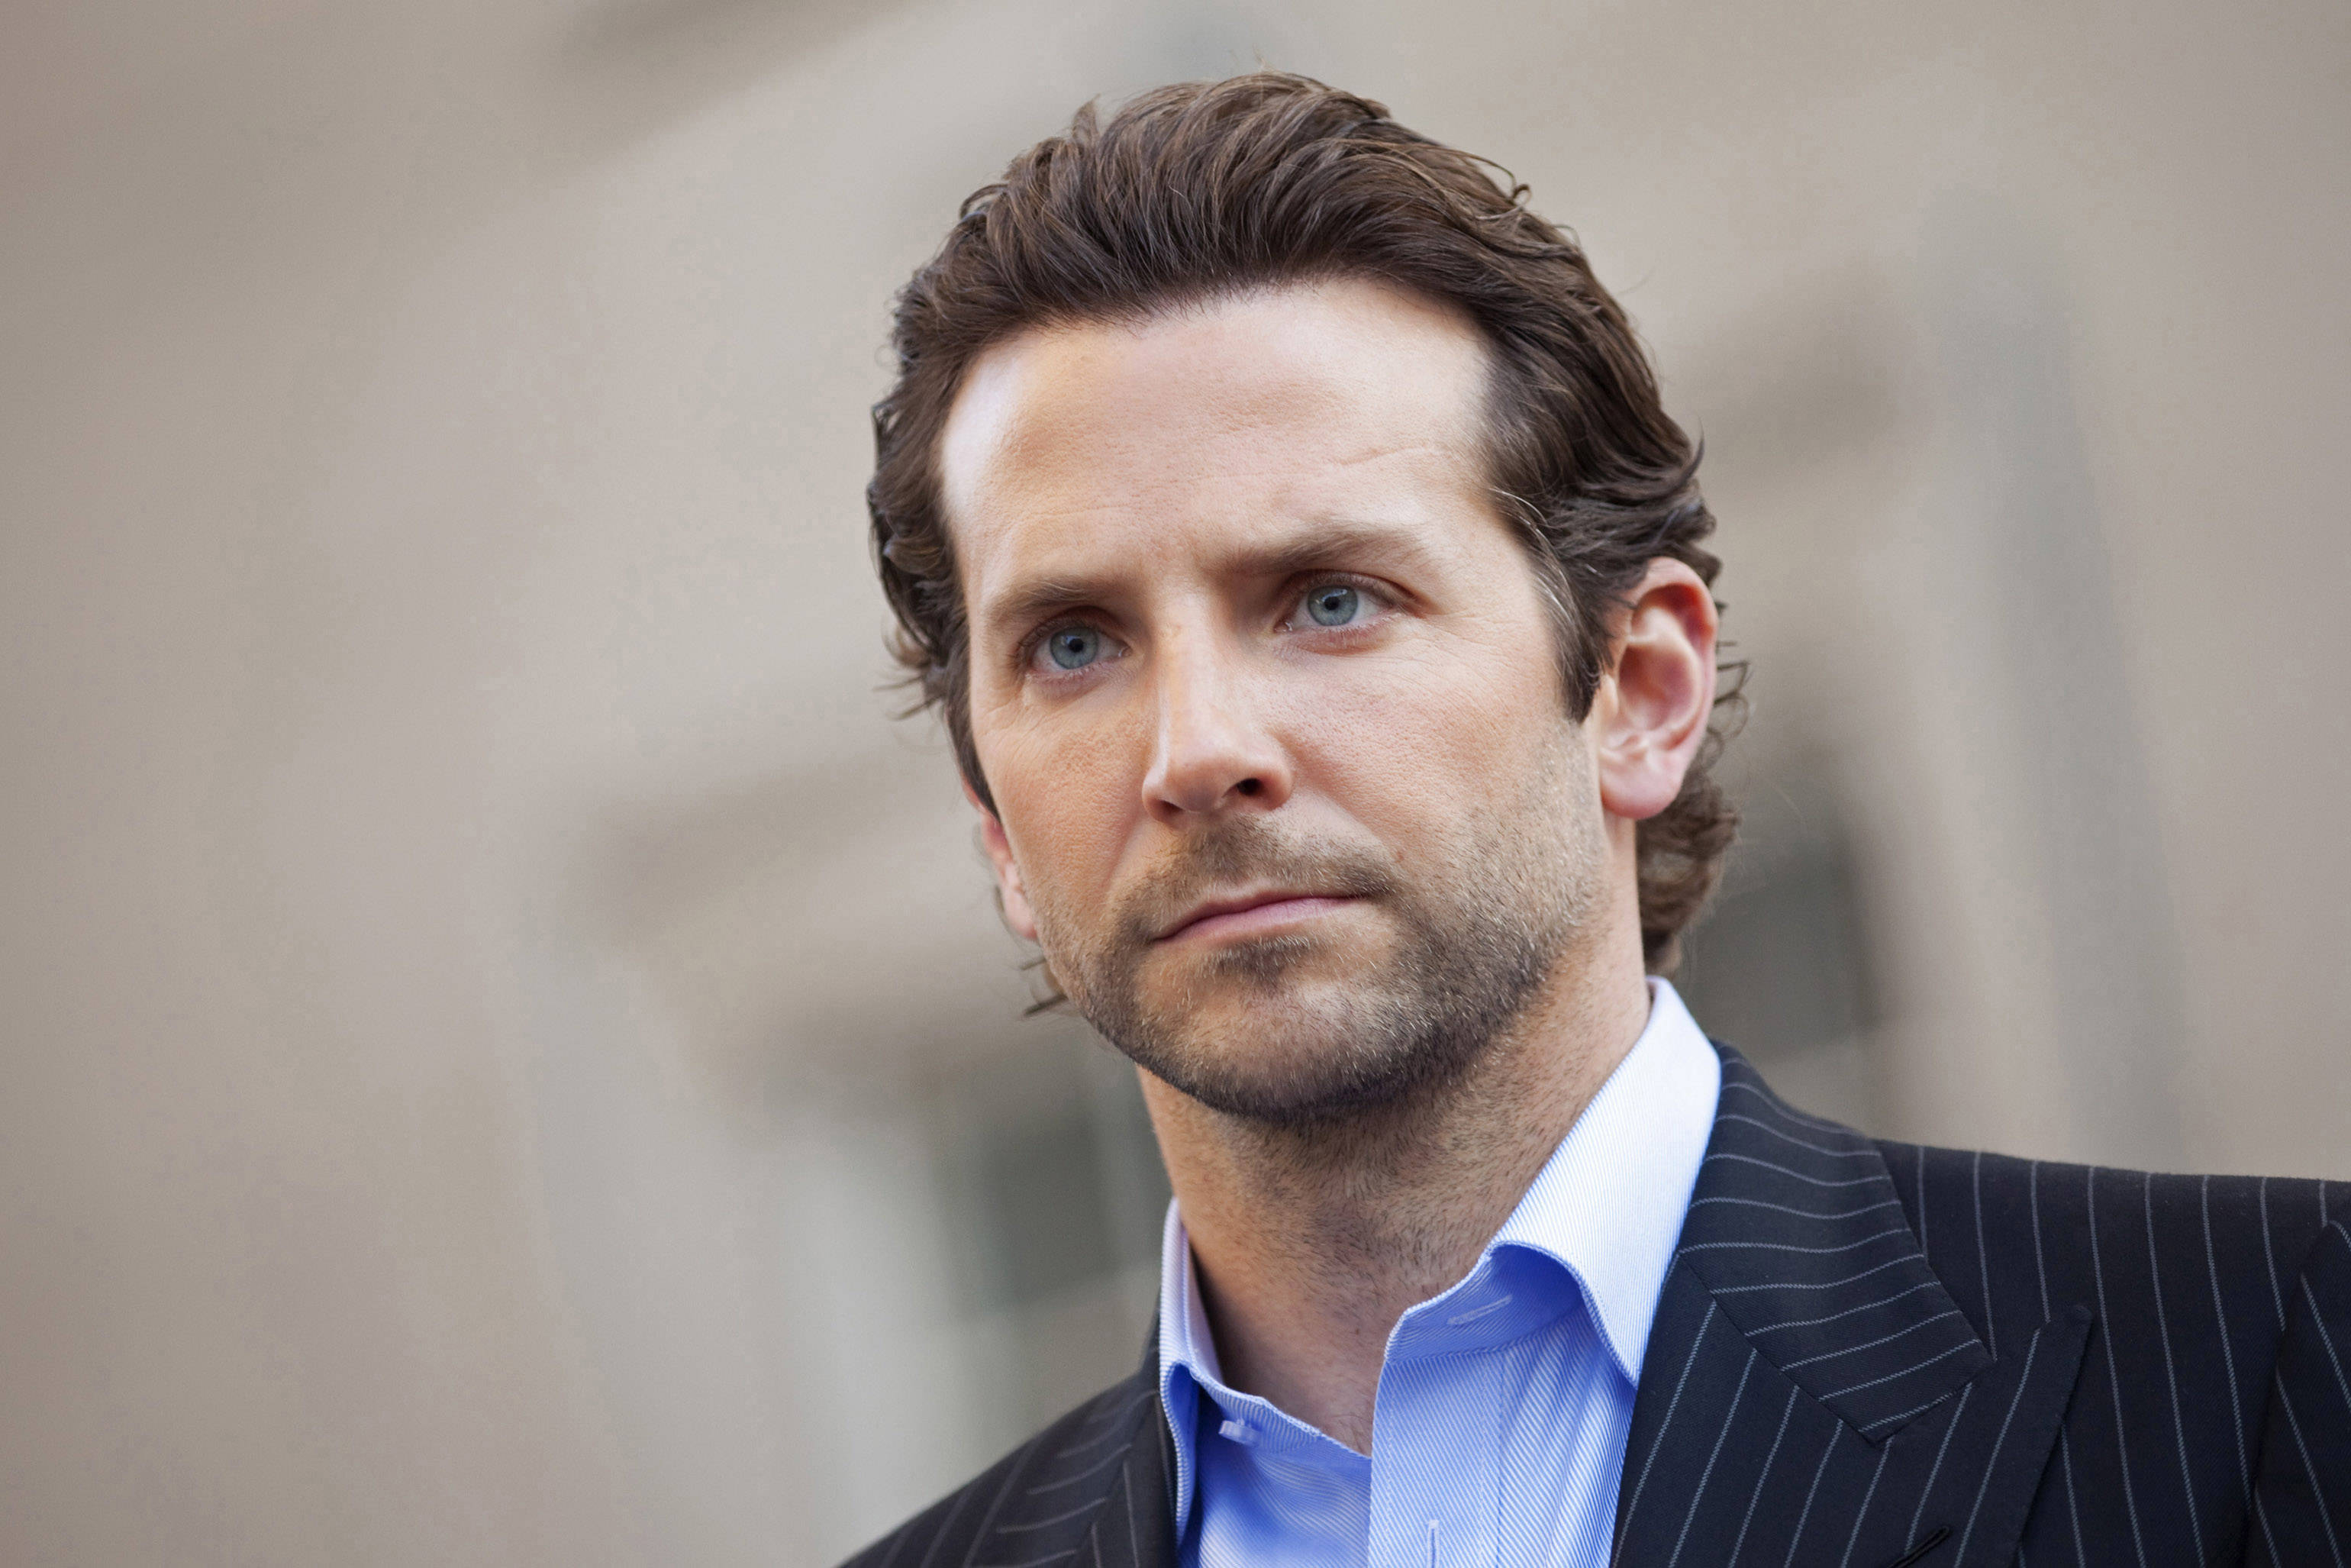 limitless-bradley-cooper-photo4.jpg